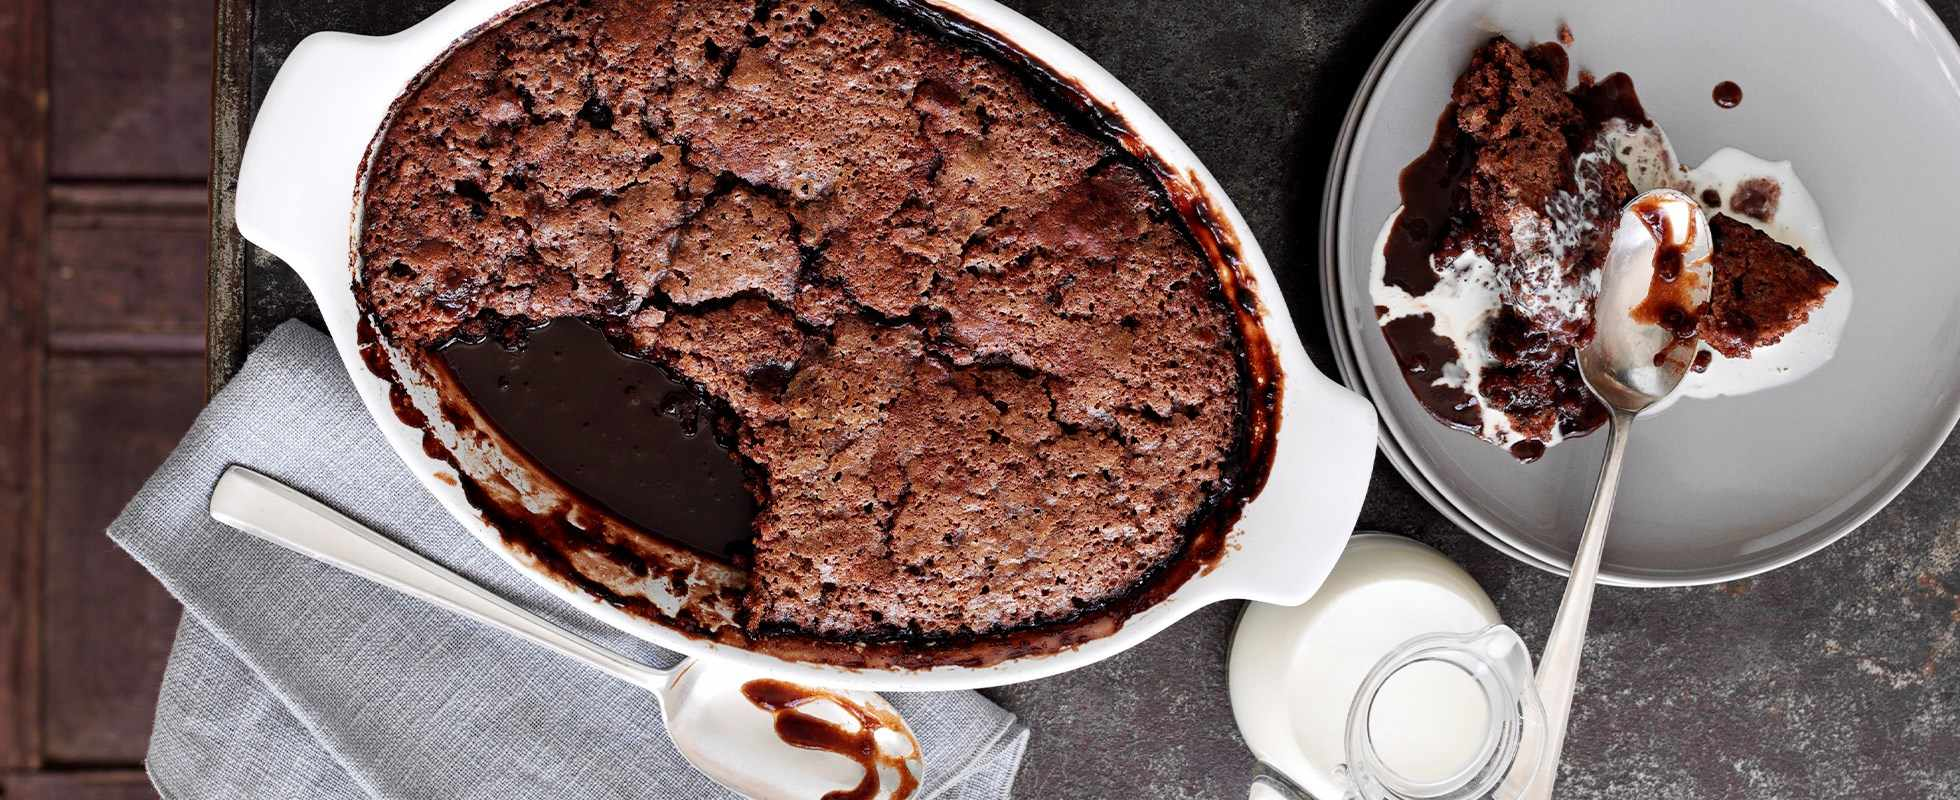 Self-Saucing Chocolate Pudding Recipe